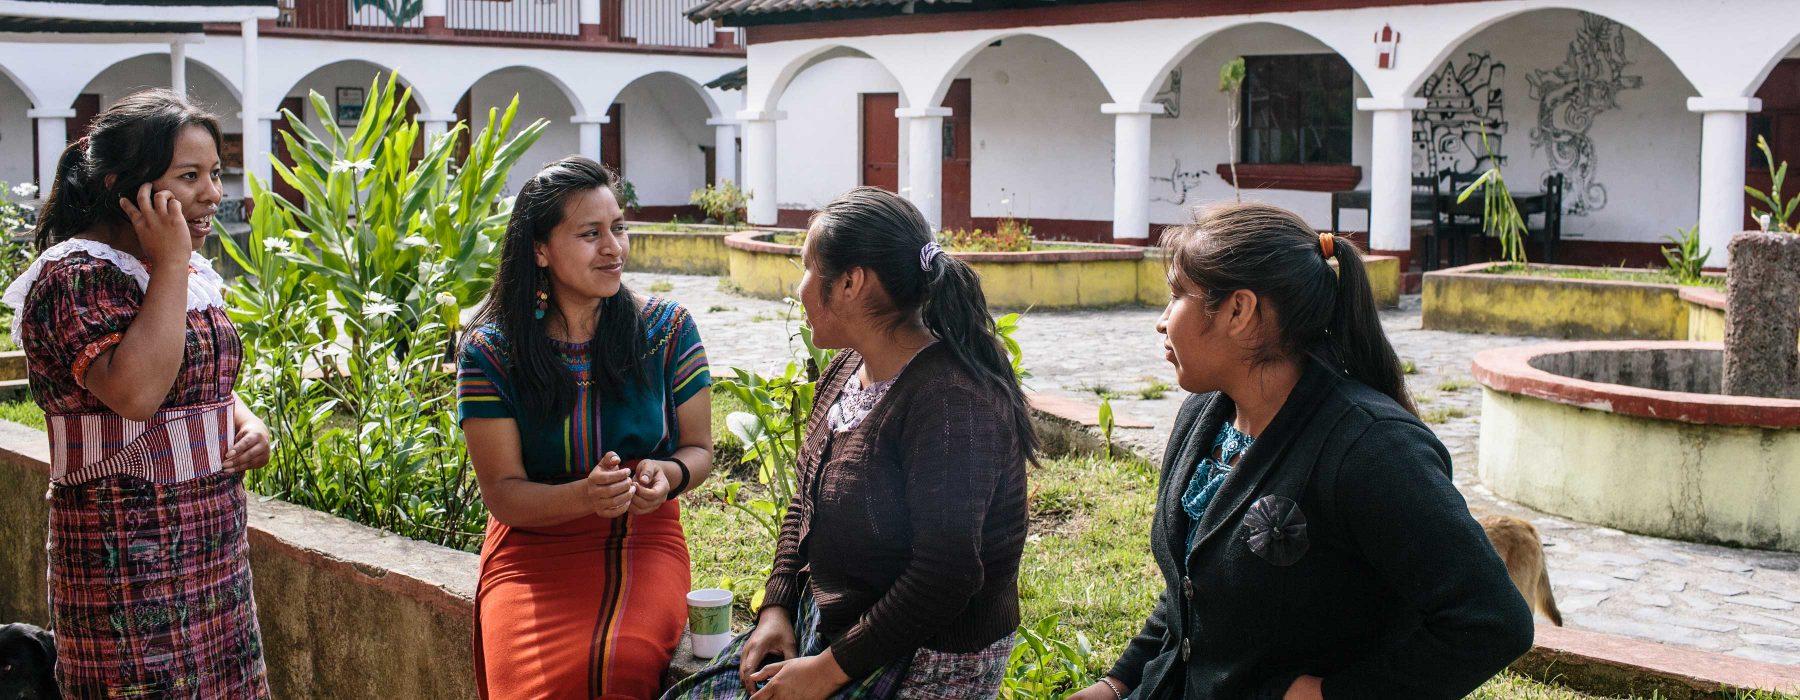 Students hang out in the plaza at the Centro de Formacion Nuevos Mayas in the Xix community of Guatemala.